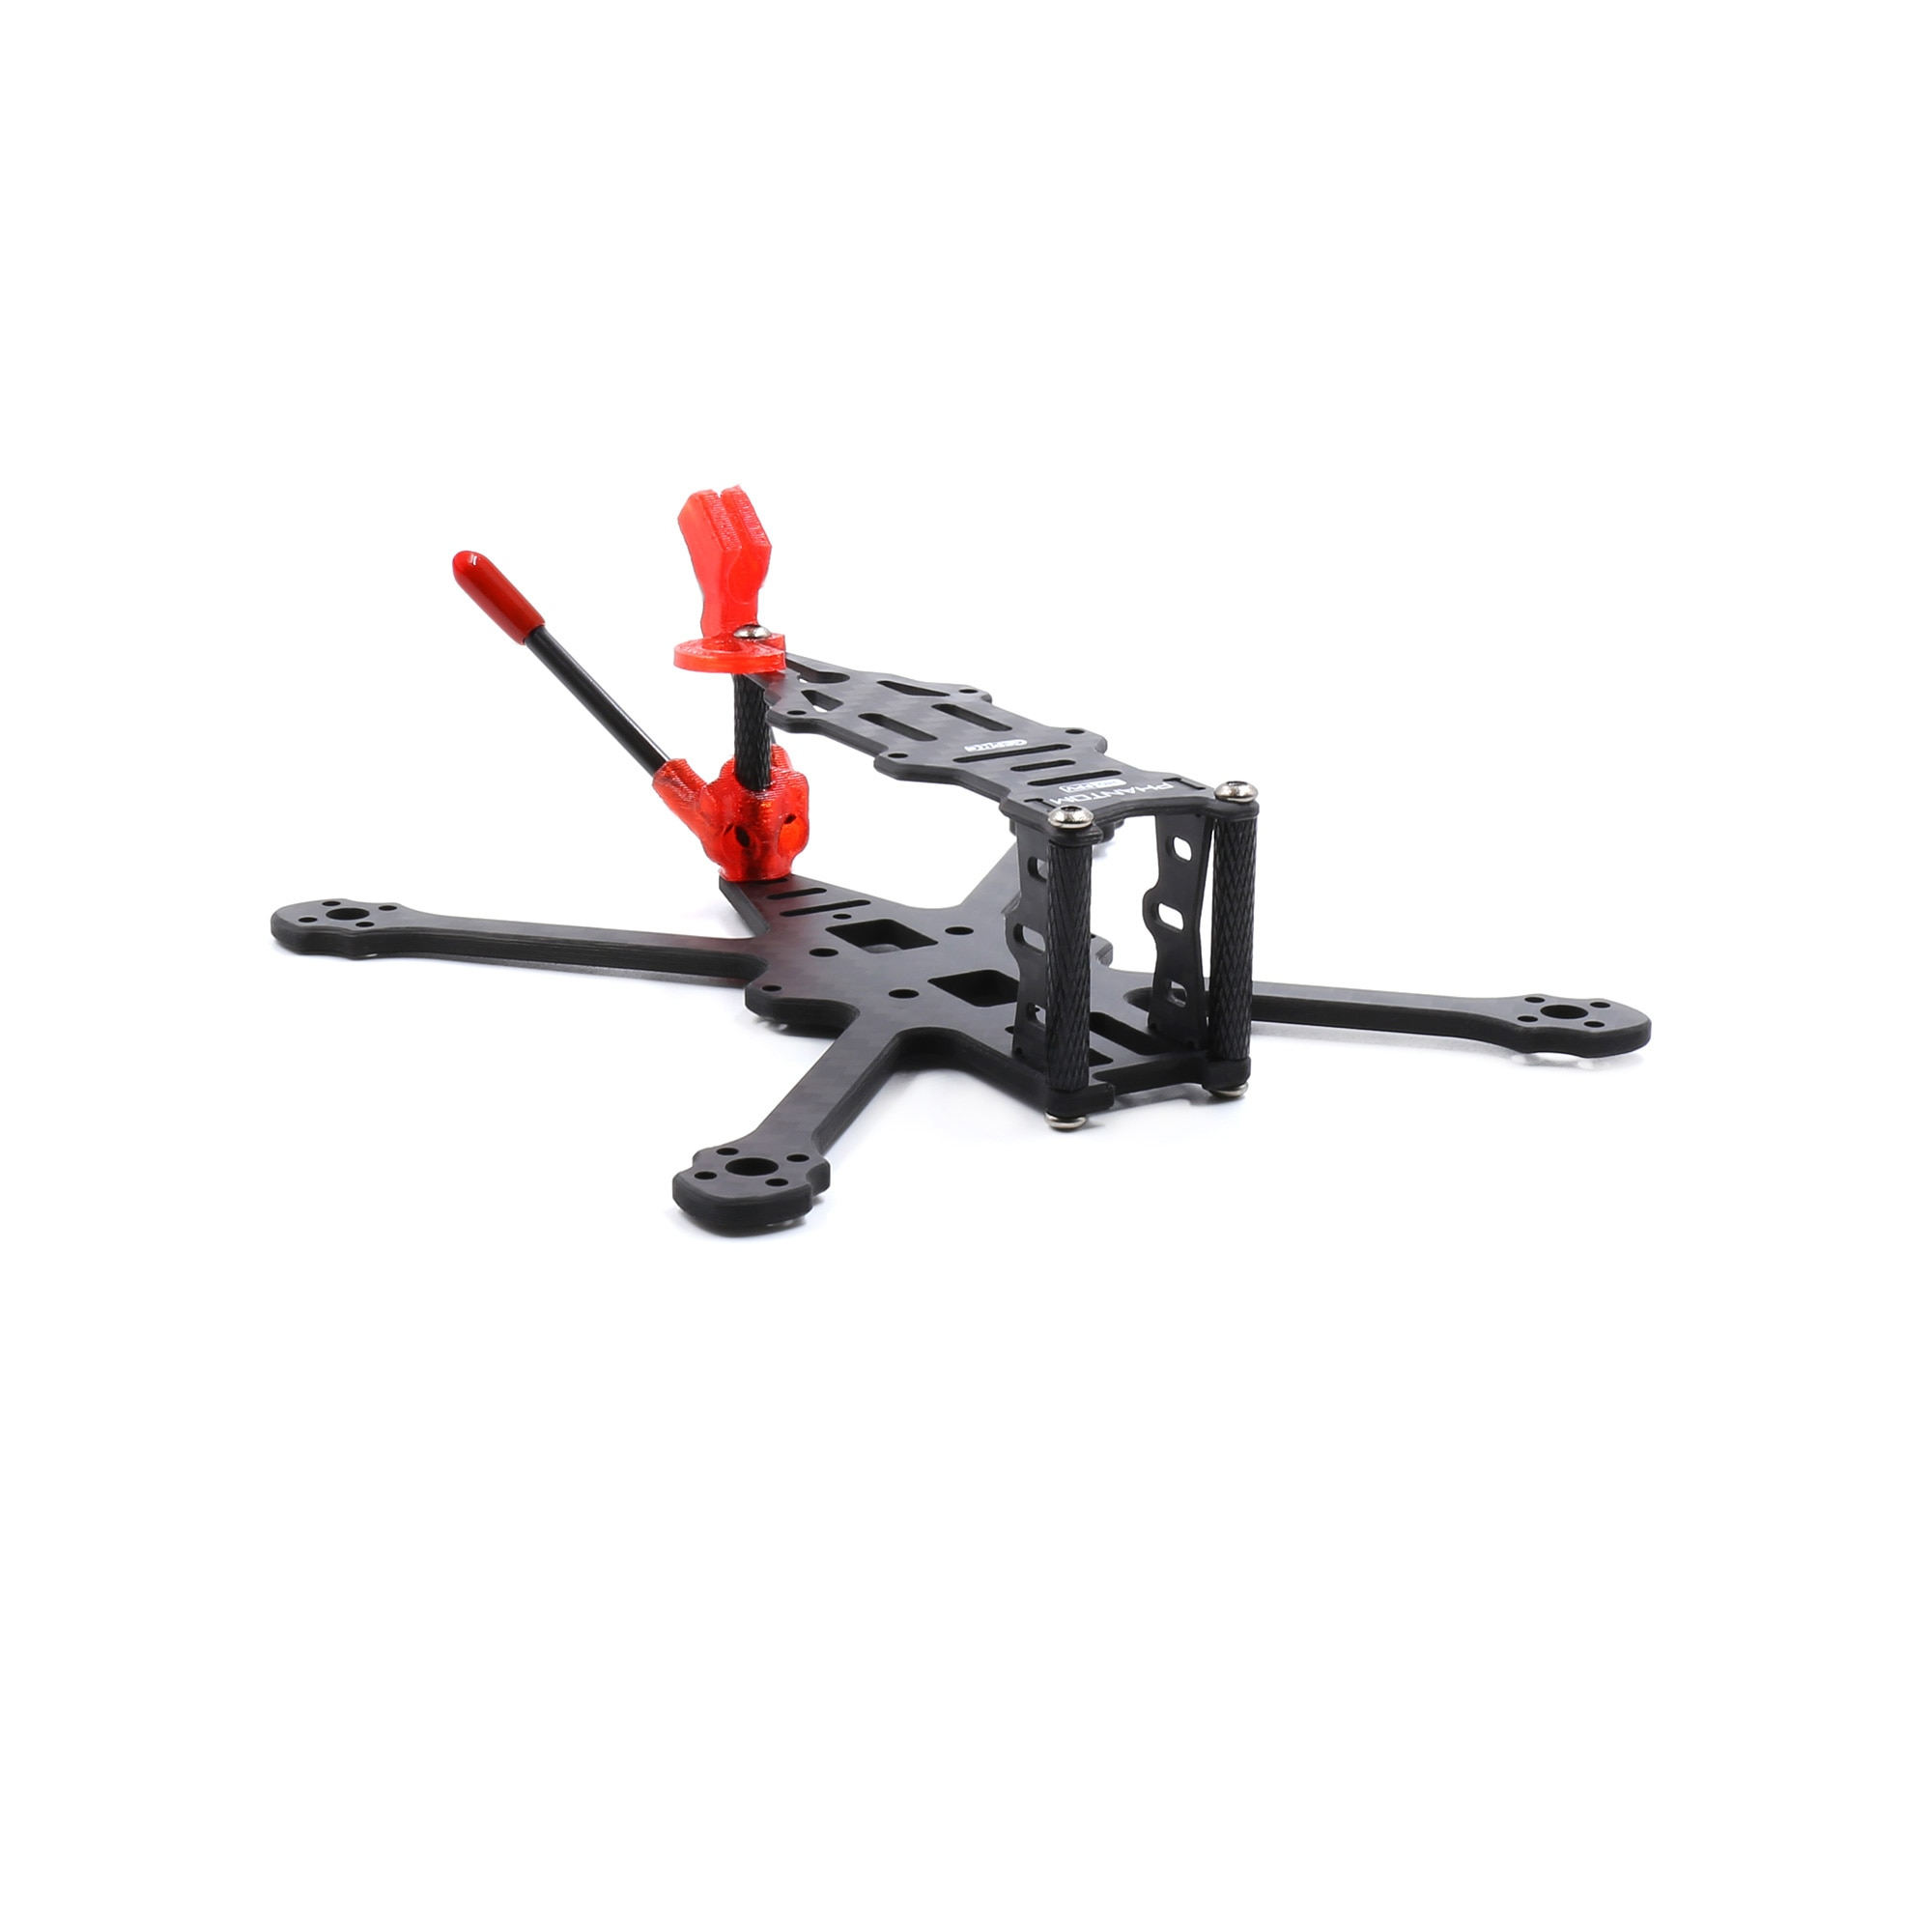 GEPRC PHANTOM HD GEP-PTHD Toothpick 125mm 2.5 Inch Frame Kit 16*16mm/25.5*25.5mm for DIY RC FPV Racing Drone Quadcopter Parts